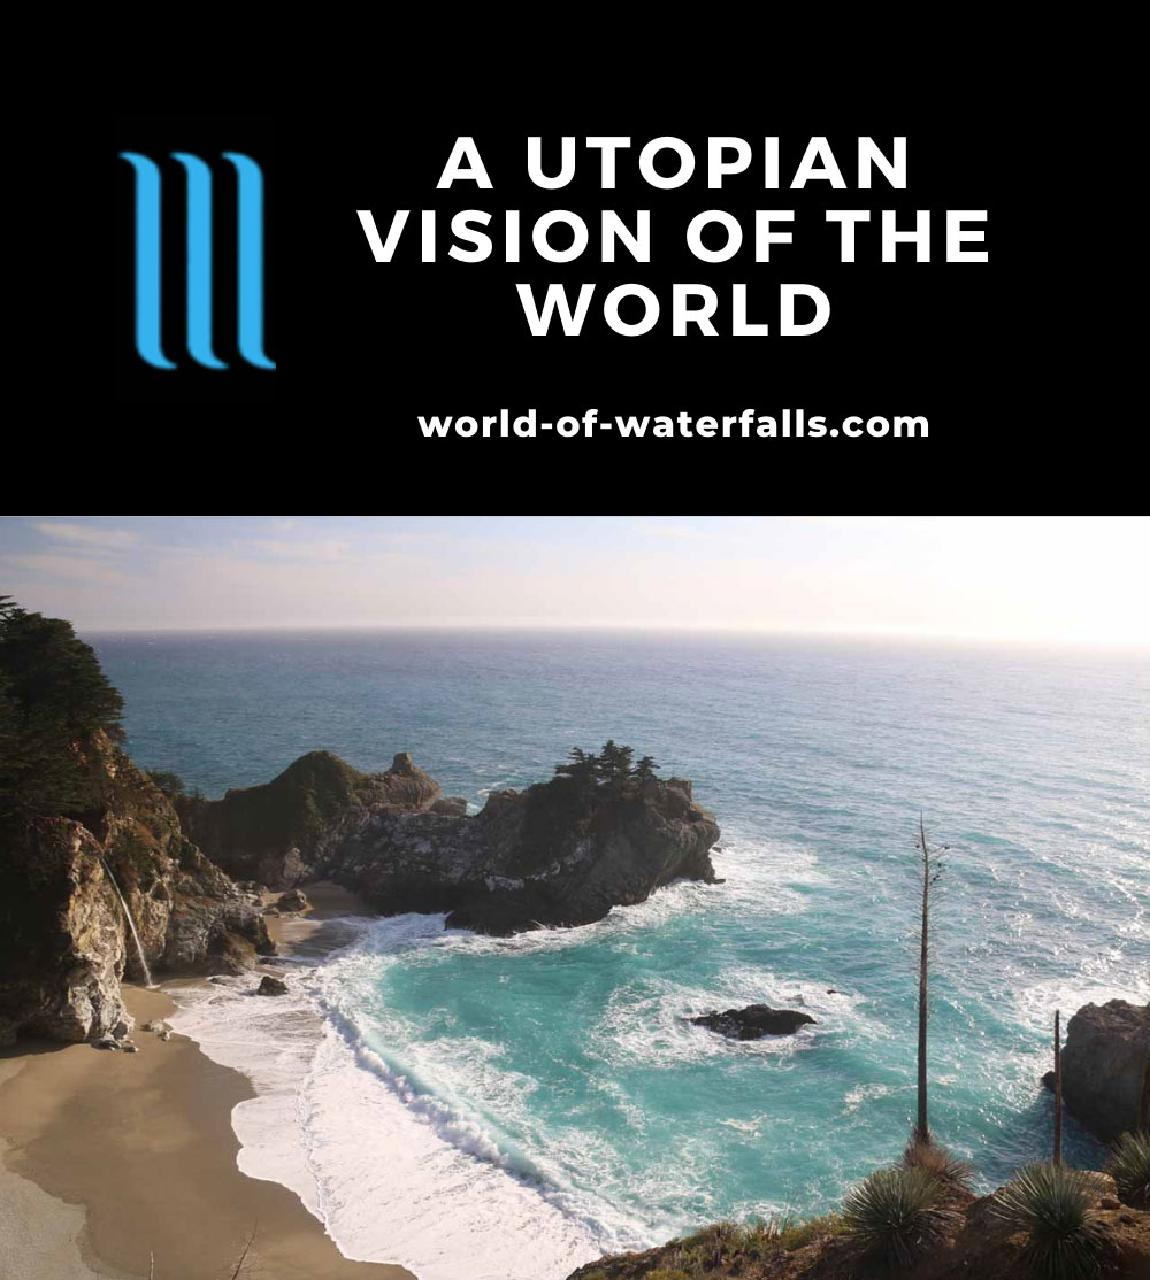 A Utopian Vision of the World